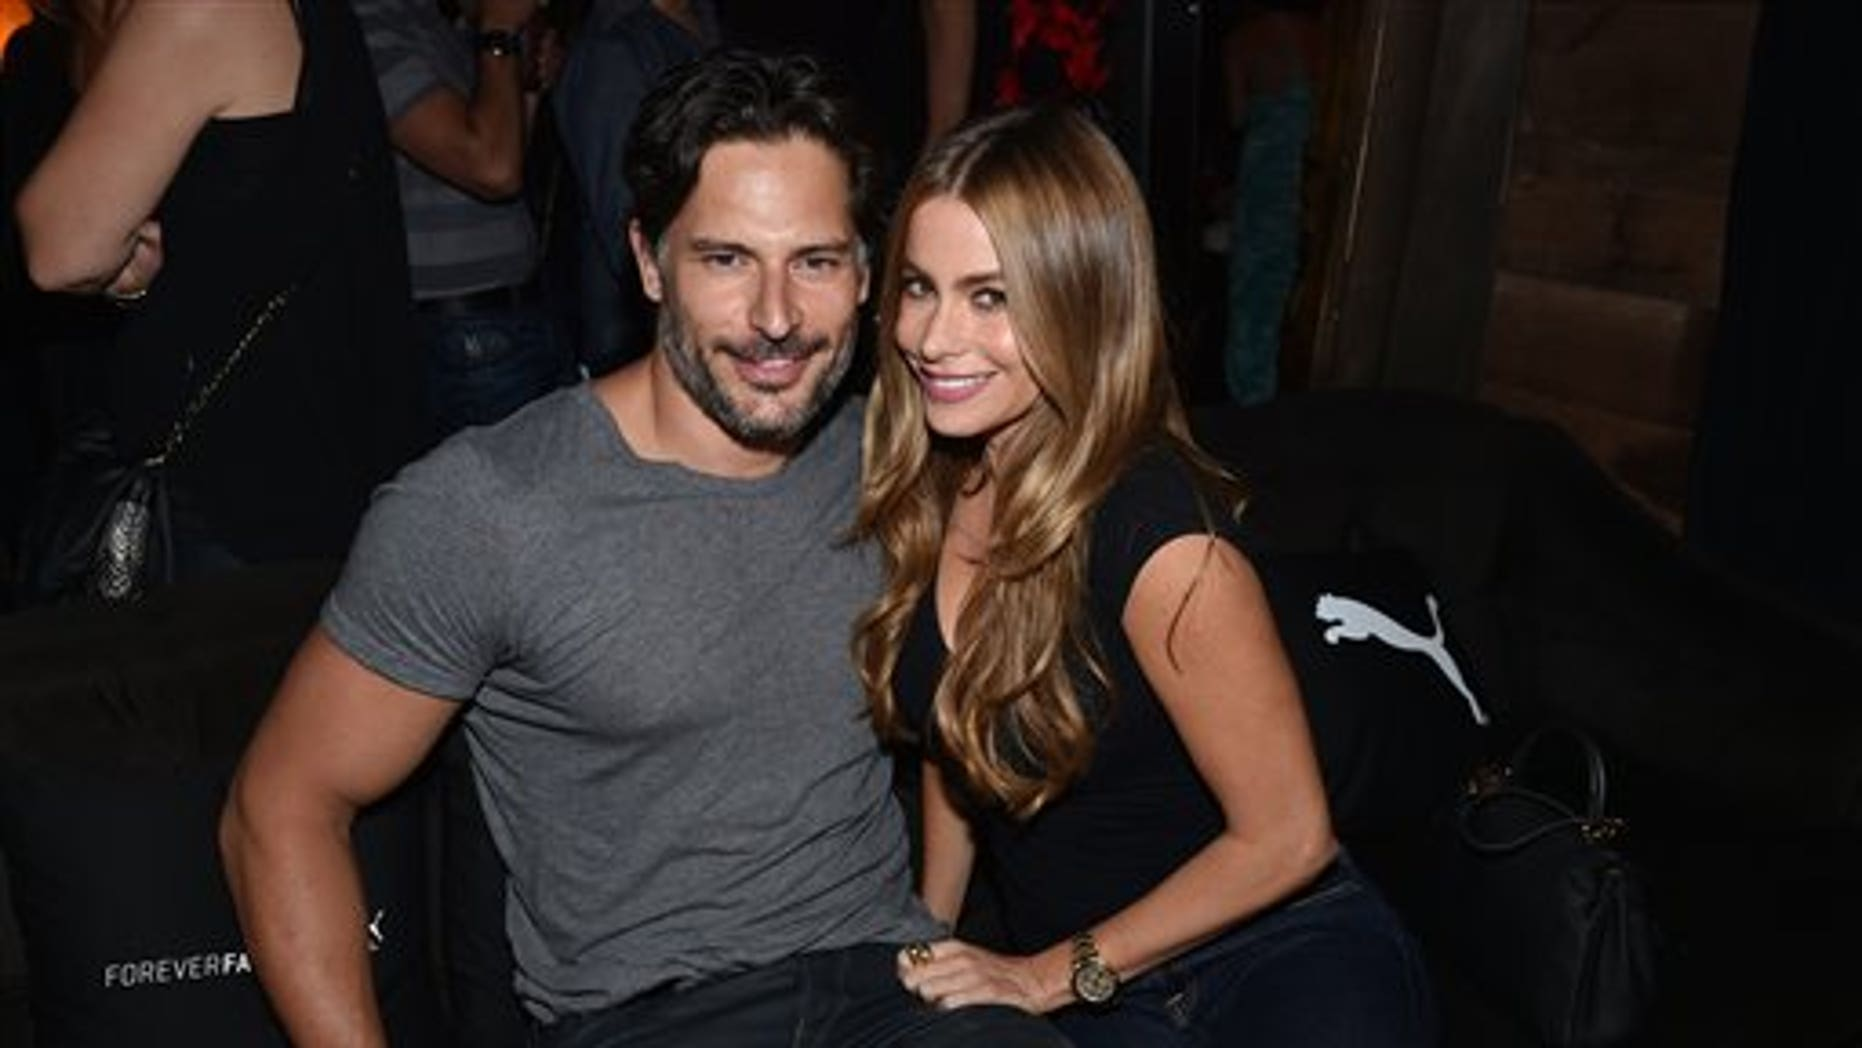 IMAGE DISTRIBUTED FOR PUMA - EXCLUSIVE - Joe Manganiello, left, and Sofia Vergara attend a private event at Hyde Lounge during the Justin Timberlake concert hosted by PUMA celebrating the brand's new Forever Faster campaign on Tuesday, Aug. 12, 2014, in Los Angeles. (Photo by John Shearer/Invision for PUMA/AP Images)